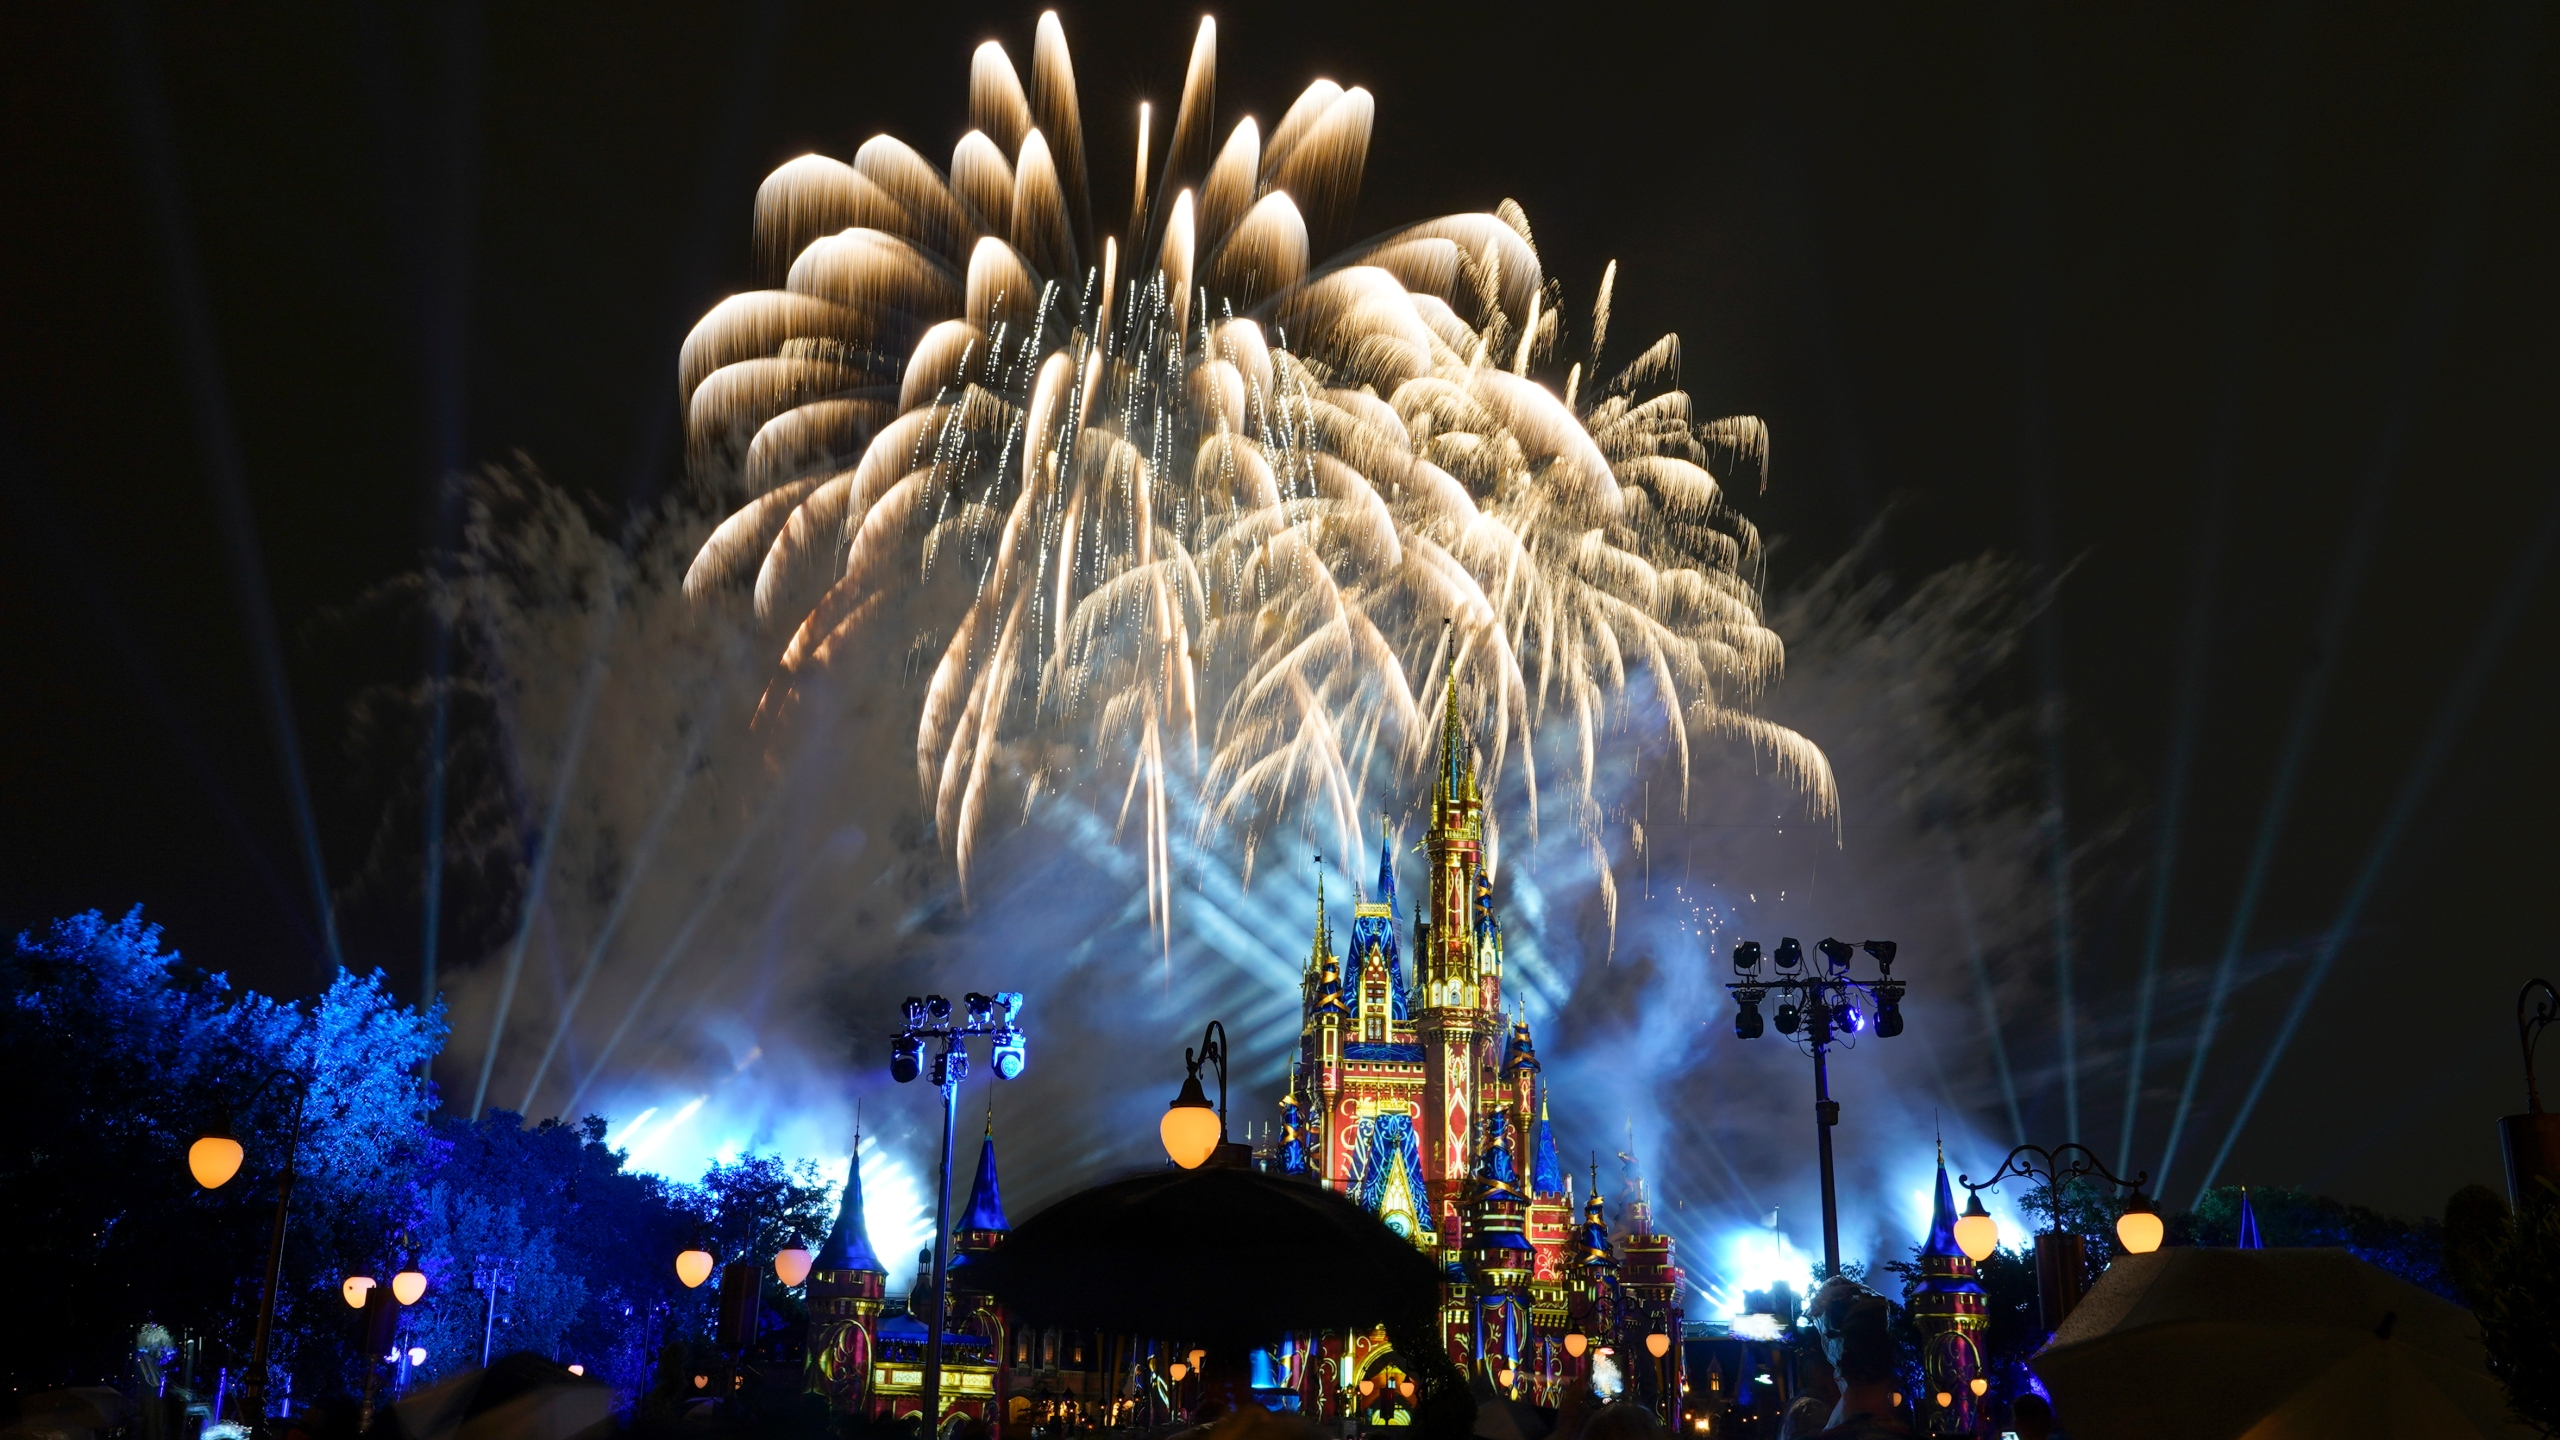 After a shutdown because of the coronavirus, fireworks fill the sky for the first time in 15 months at the Magic Kingdom at Walt Disney World, July 1, 2021, in Lake Buena Vista, Fla. (AP Photo/John Raoux)